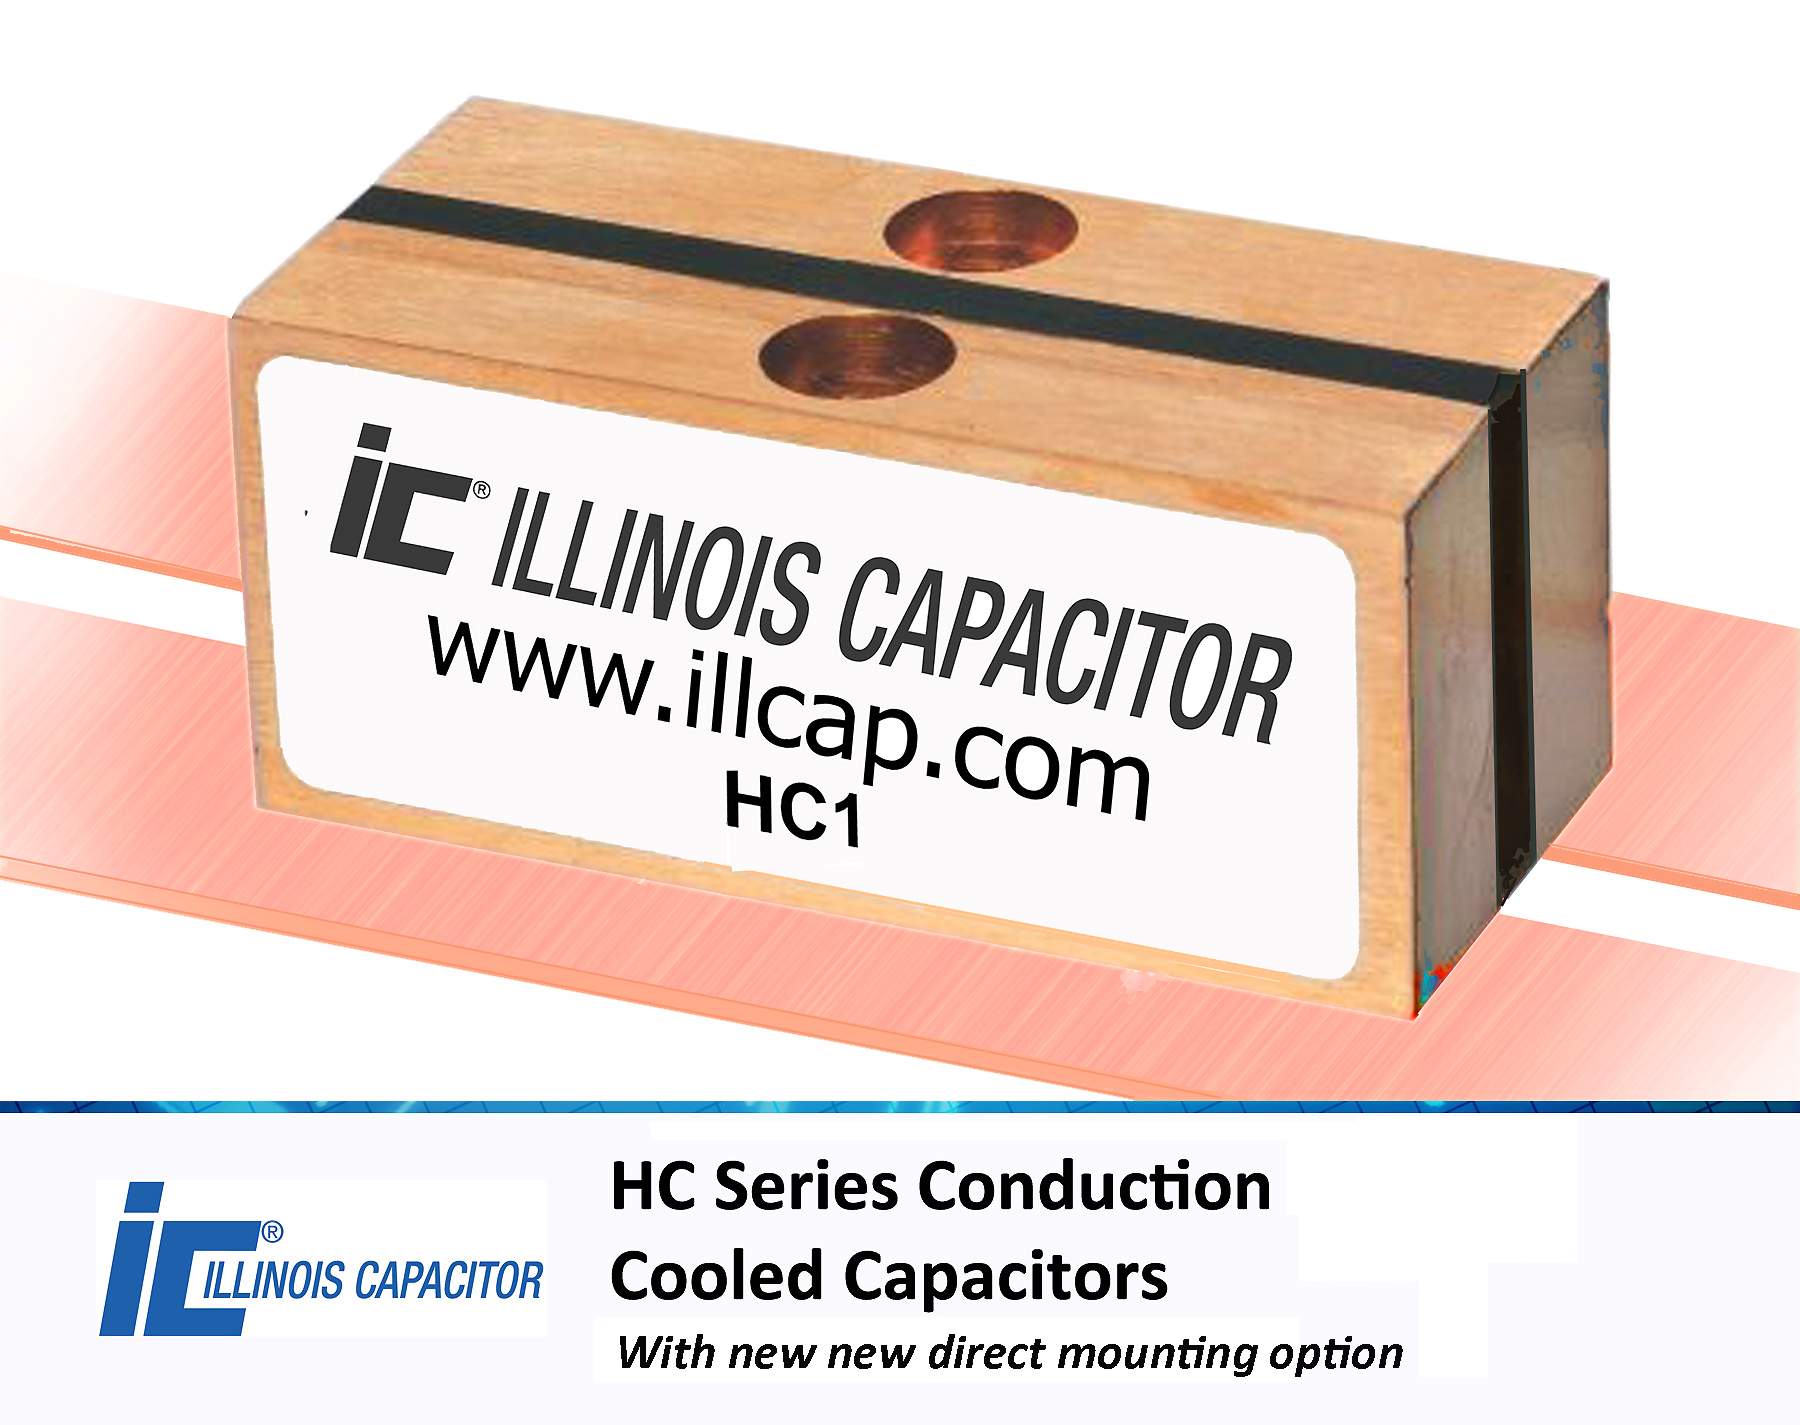 Power Systems Design Psd Information To Your Designs Fast Half Wave Rectifier Circuit Automotivecircuit Conduction Cooled Capacitors Include Direct Mounting Options